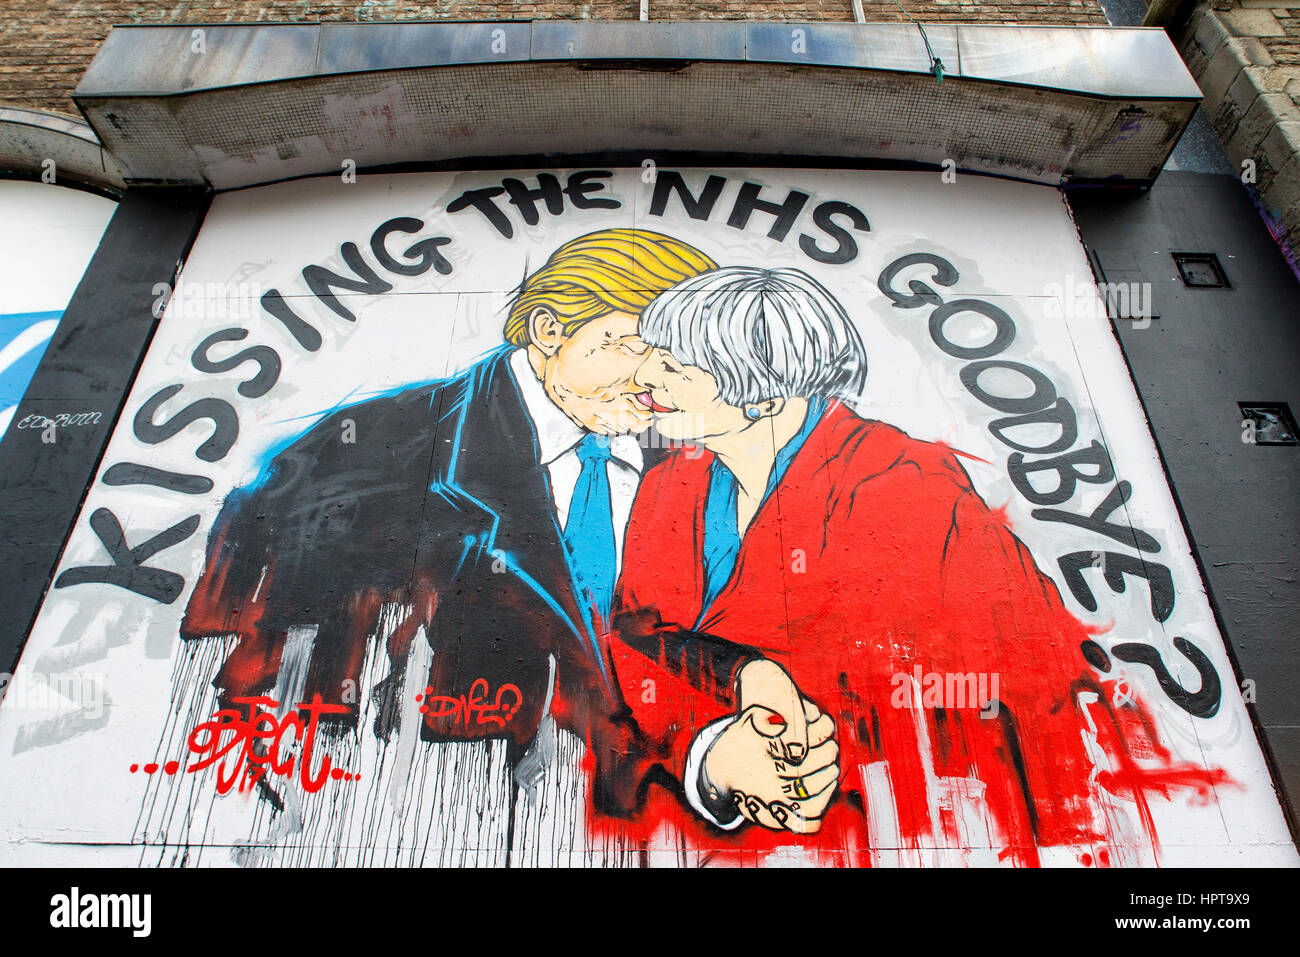 Bristol, UK, 24th Feb, 2017. A new new piece of street art warning about the death of the NHS is pictured in Bristol. - Stock Image